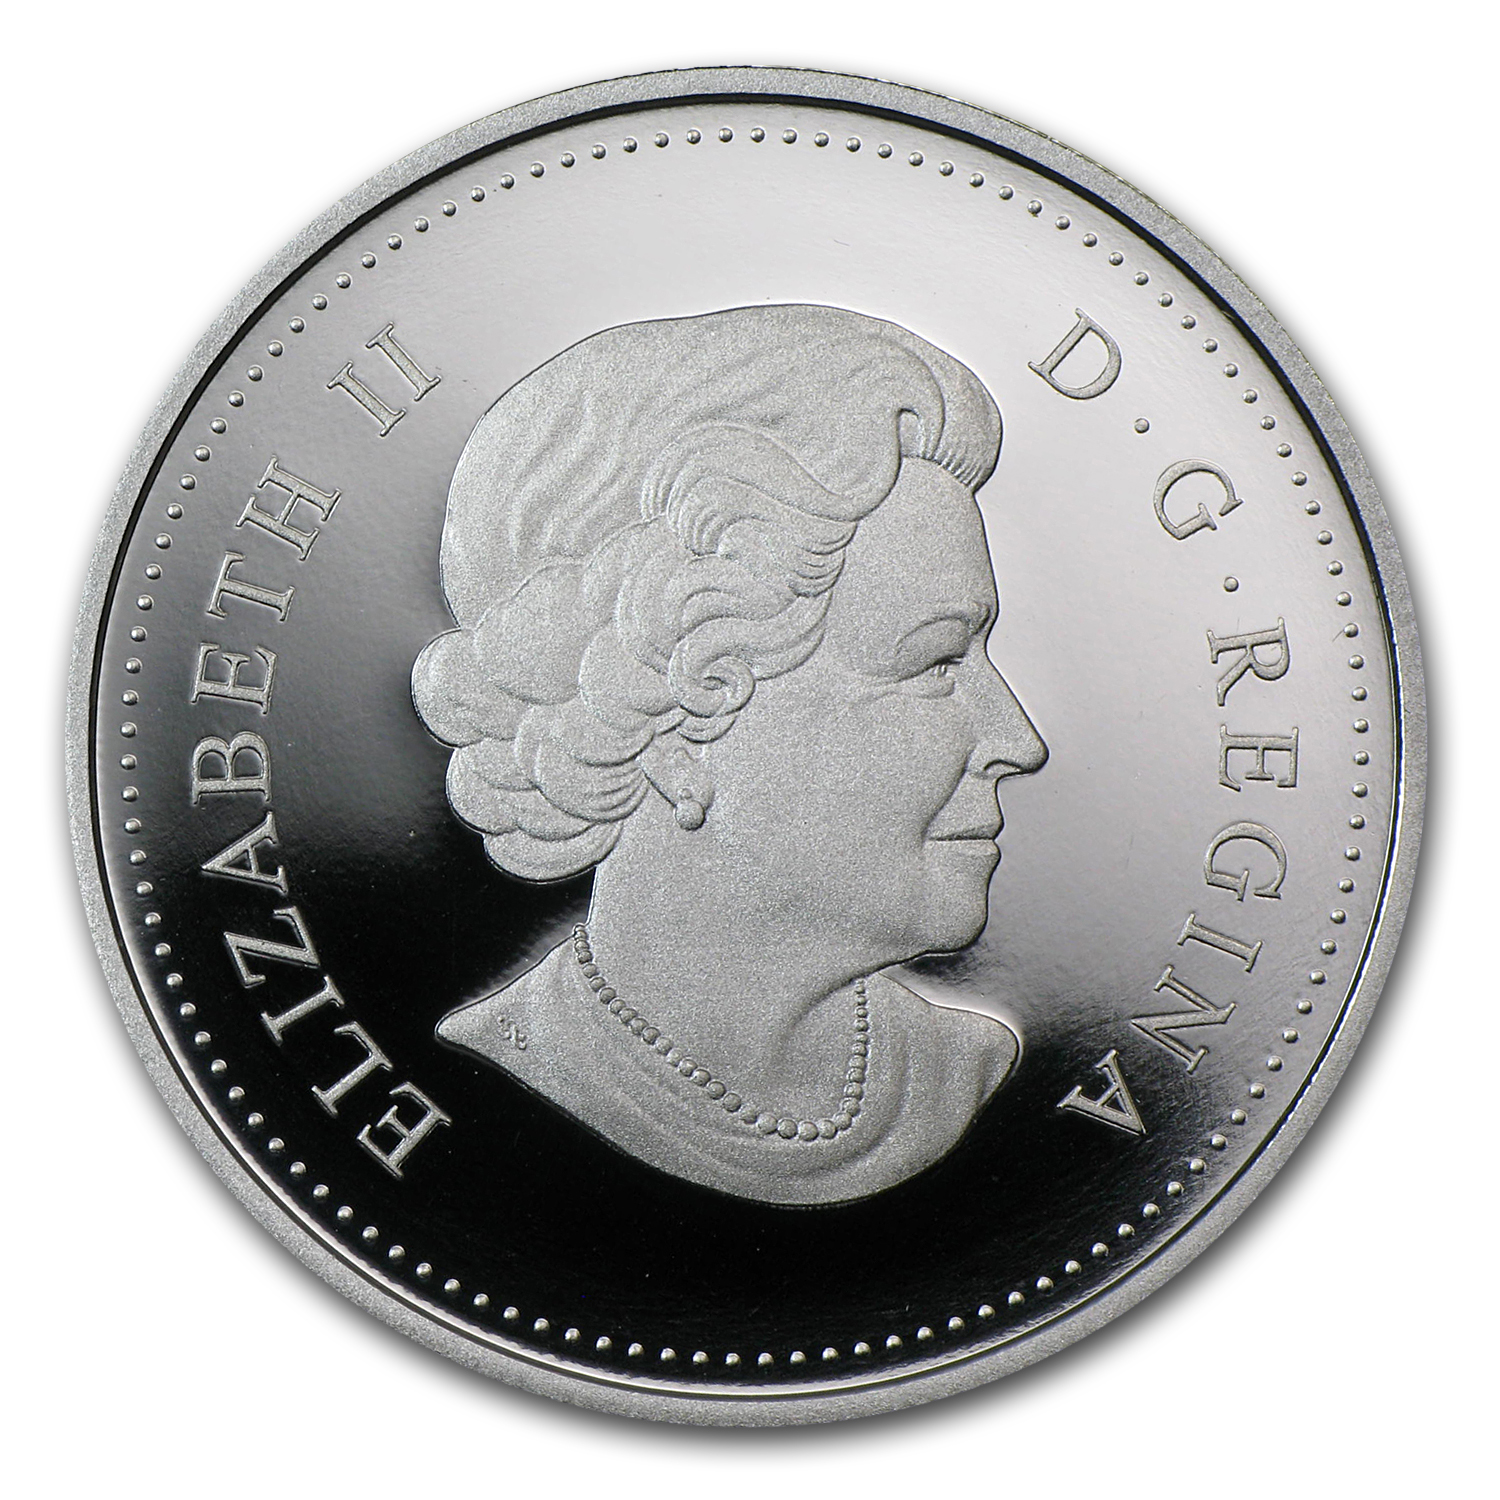 2012 Silver Canadian $1 - Calgary Stampede Bucking Bronco